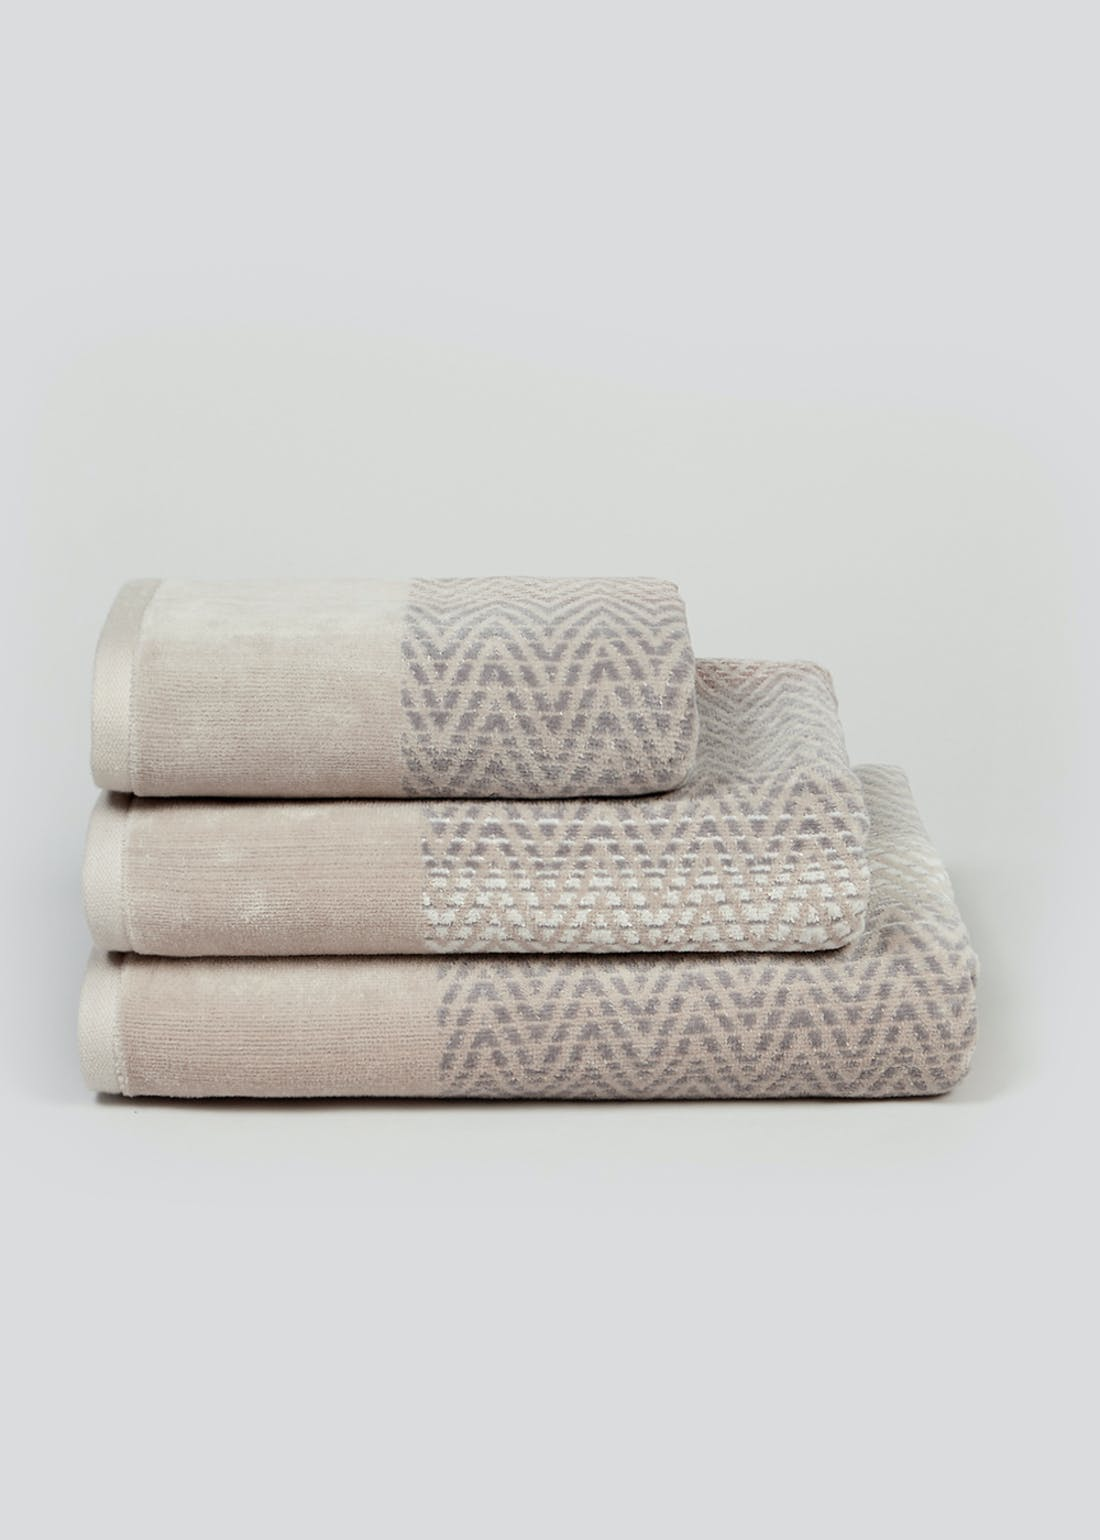 Chevron Velour Towels